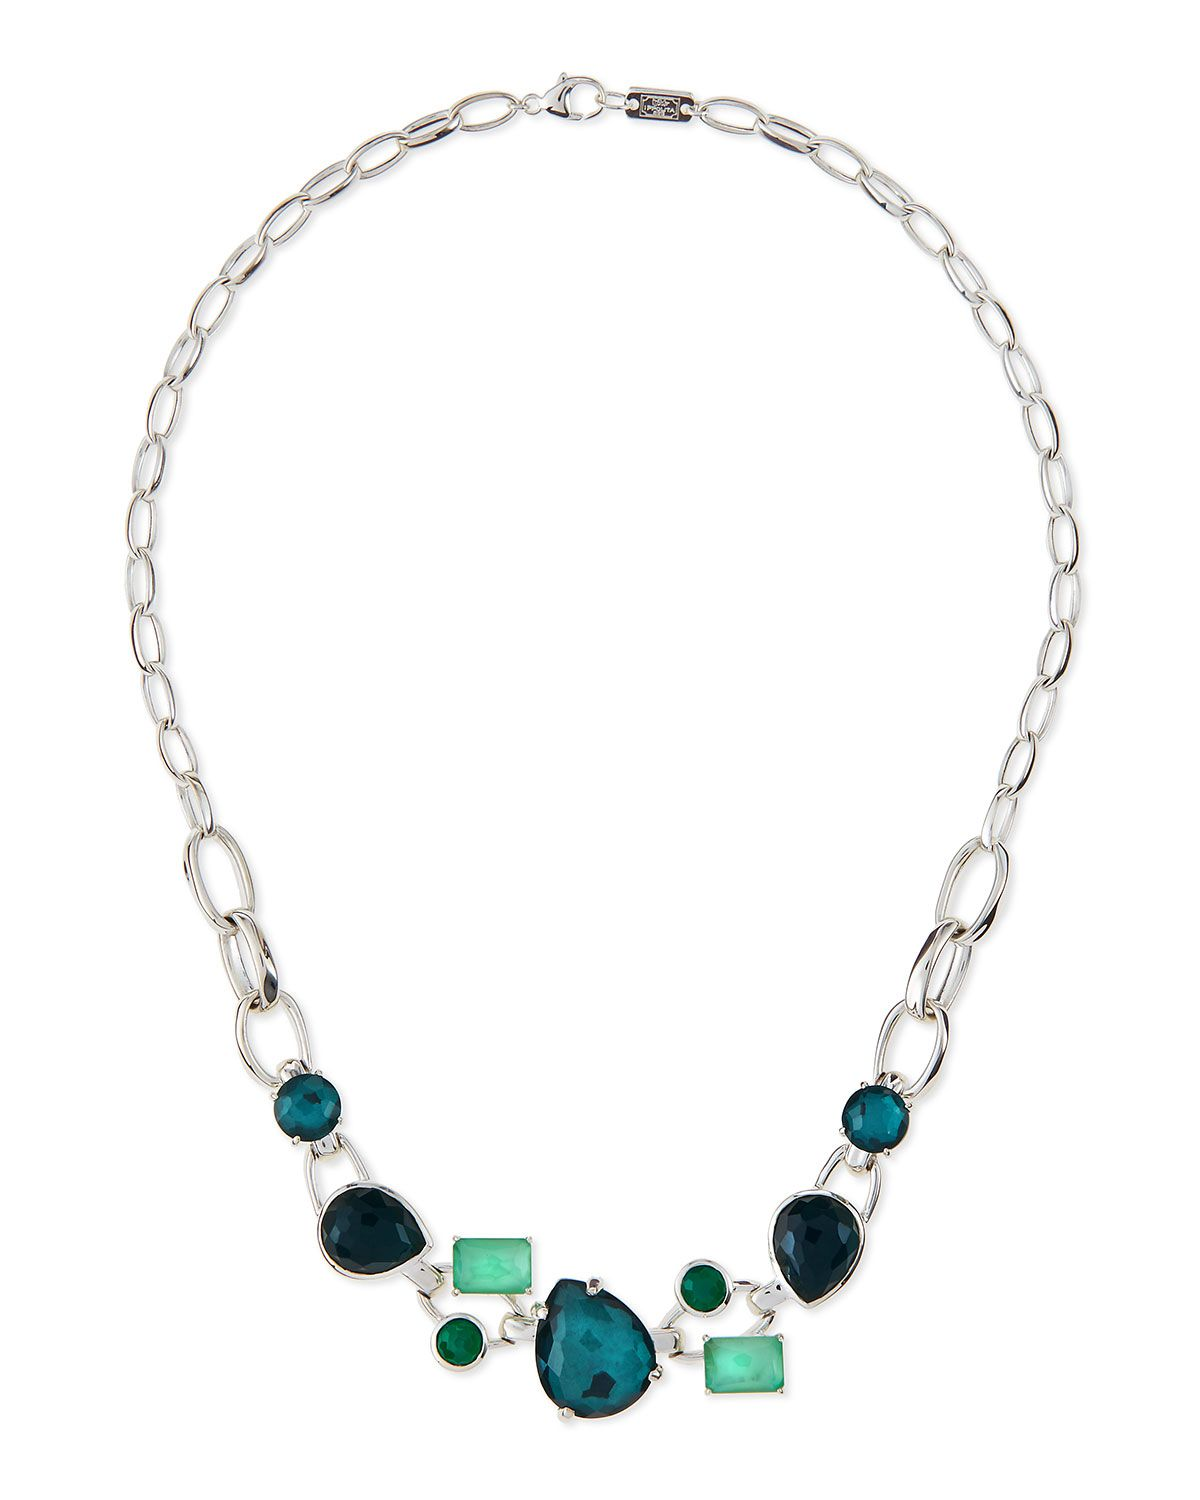 Ippolita 18k Gold Rock Candy Multi-Stone Necklace in Fall Rainbow, 18L